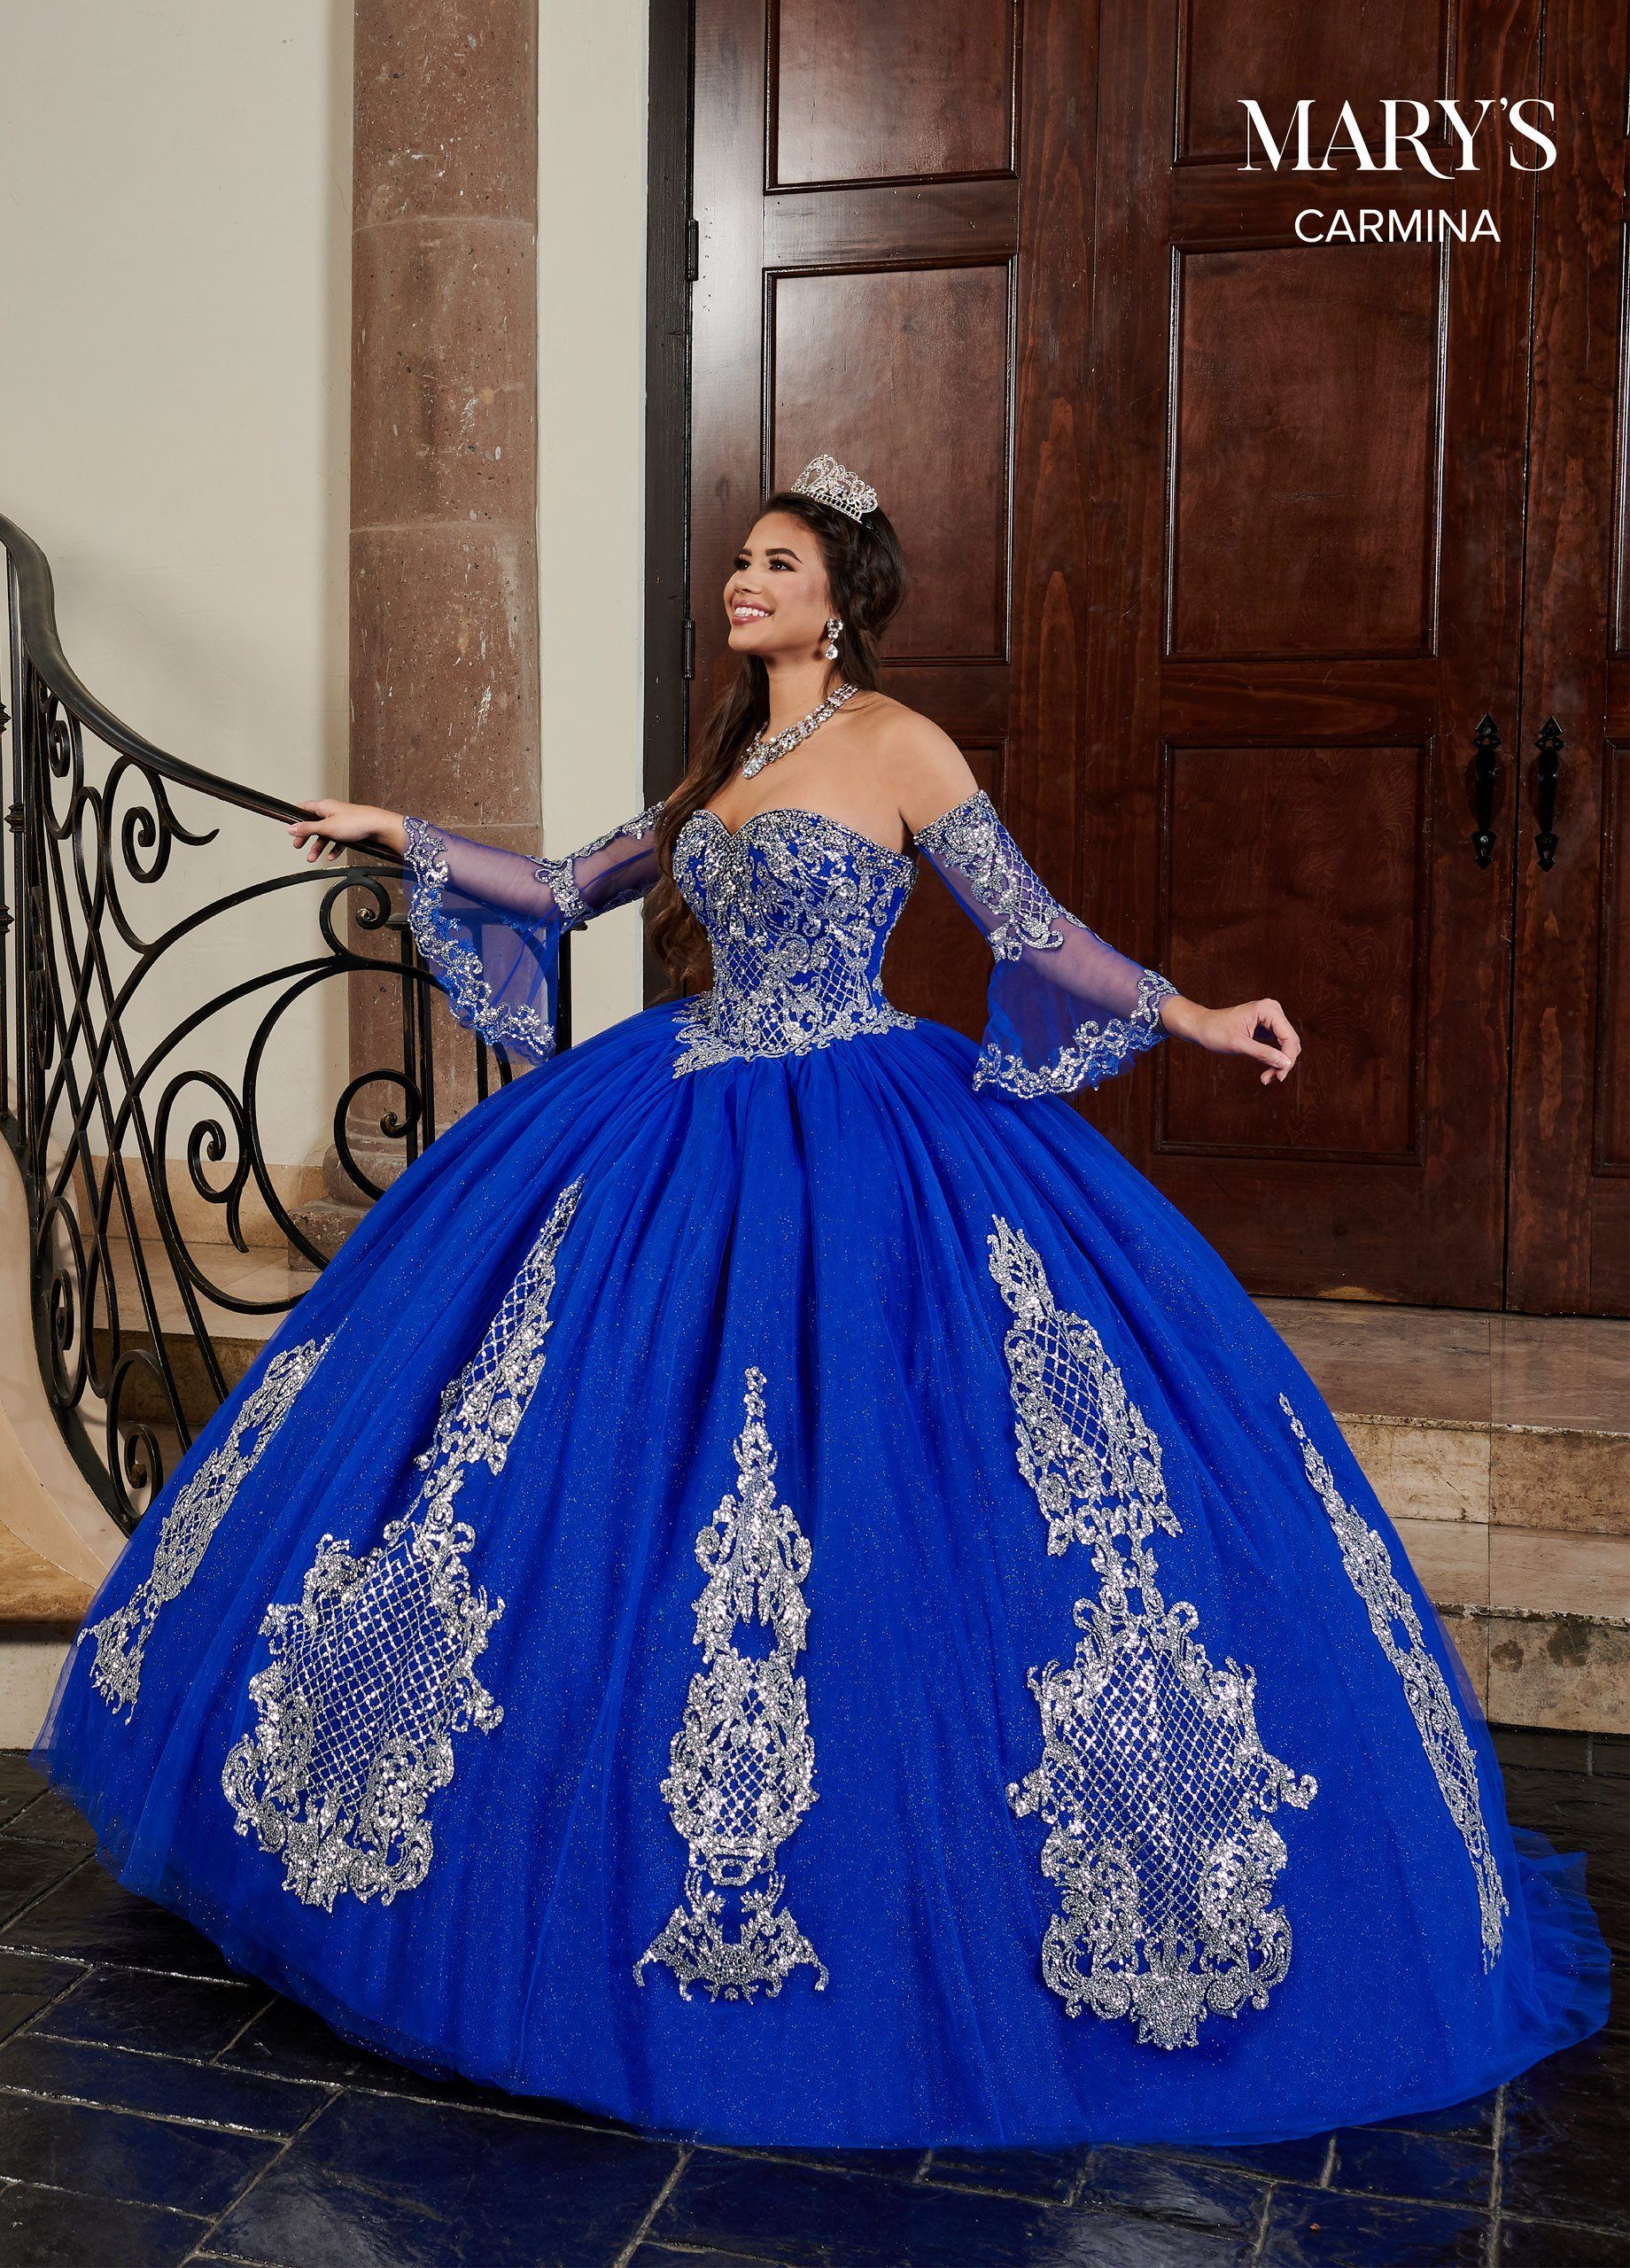 Sweetheart Glitter Tulle Quinceanera Dress By Mary S Bridal Mq1068 In 2021 Quinceanera Dresses Blue Quince Dresses Dresses Quinceanera Blue [ 2560 x 1840 Pixel ]